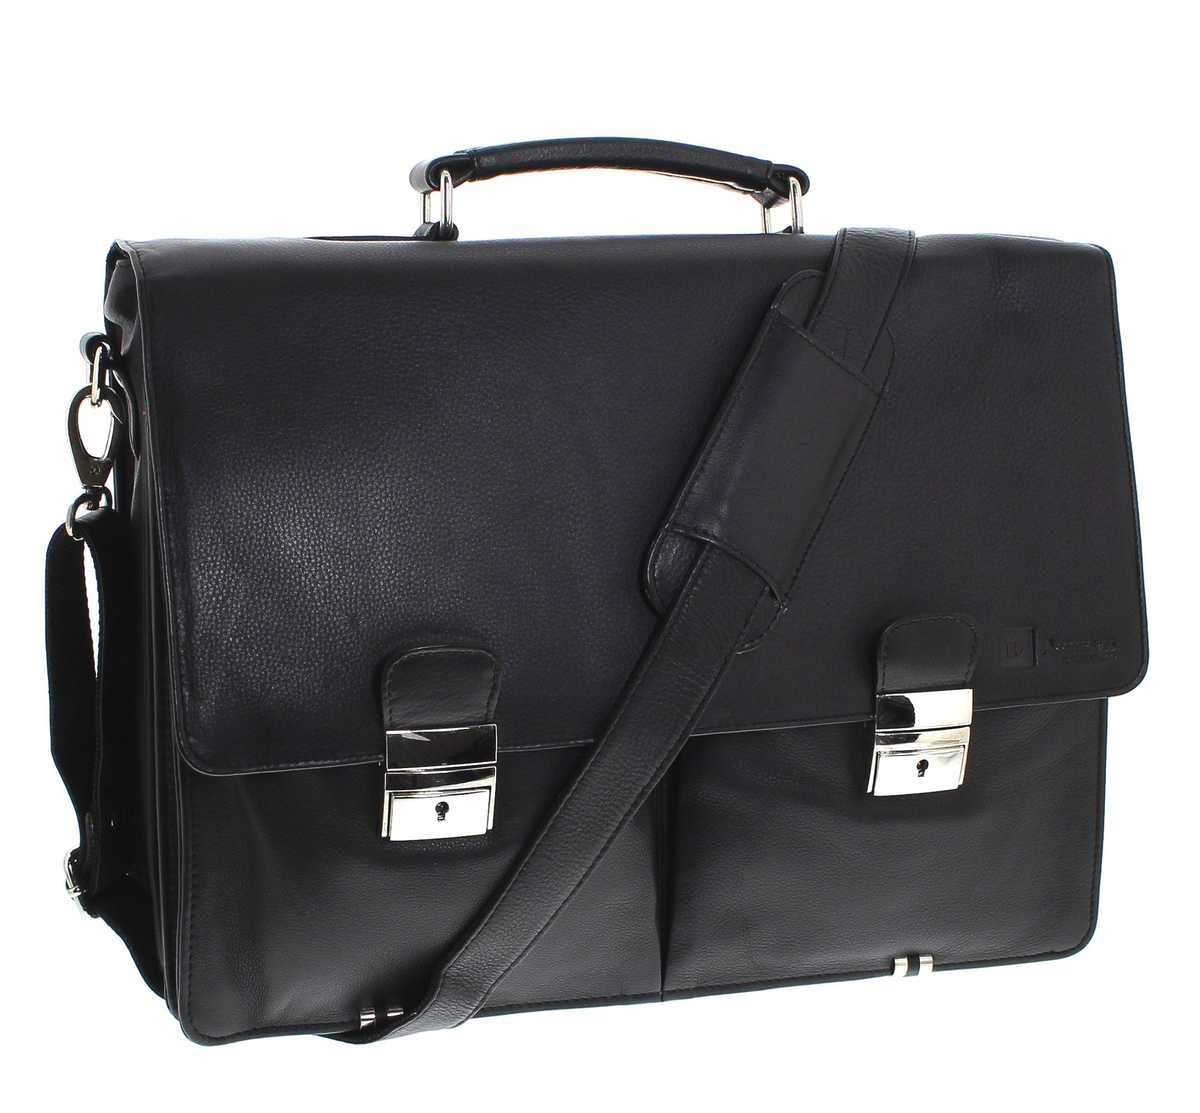 Fashion Boots FB Bags 882 Business Bag Black Ledertasche